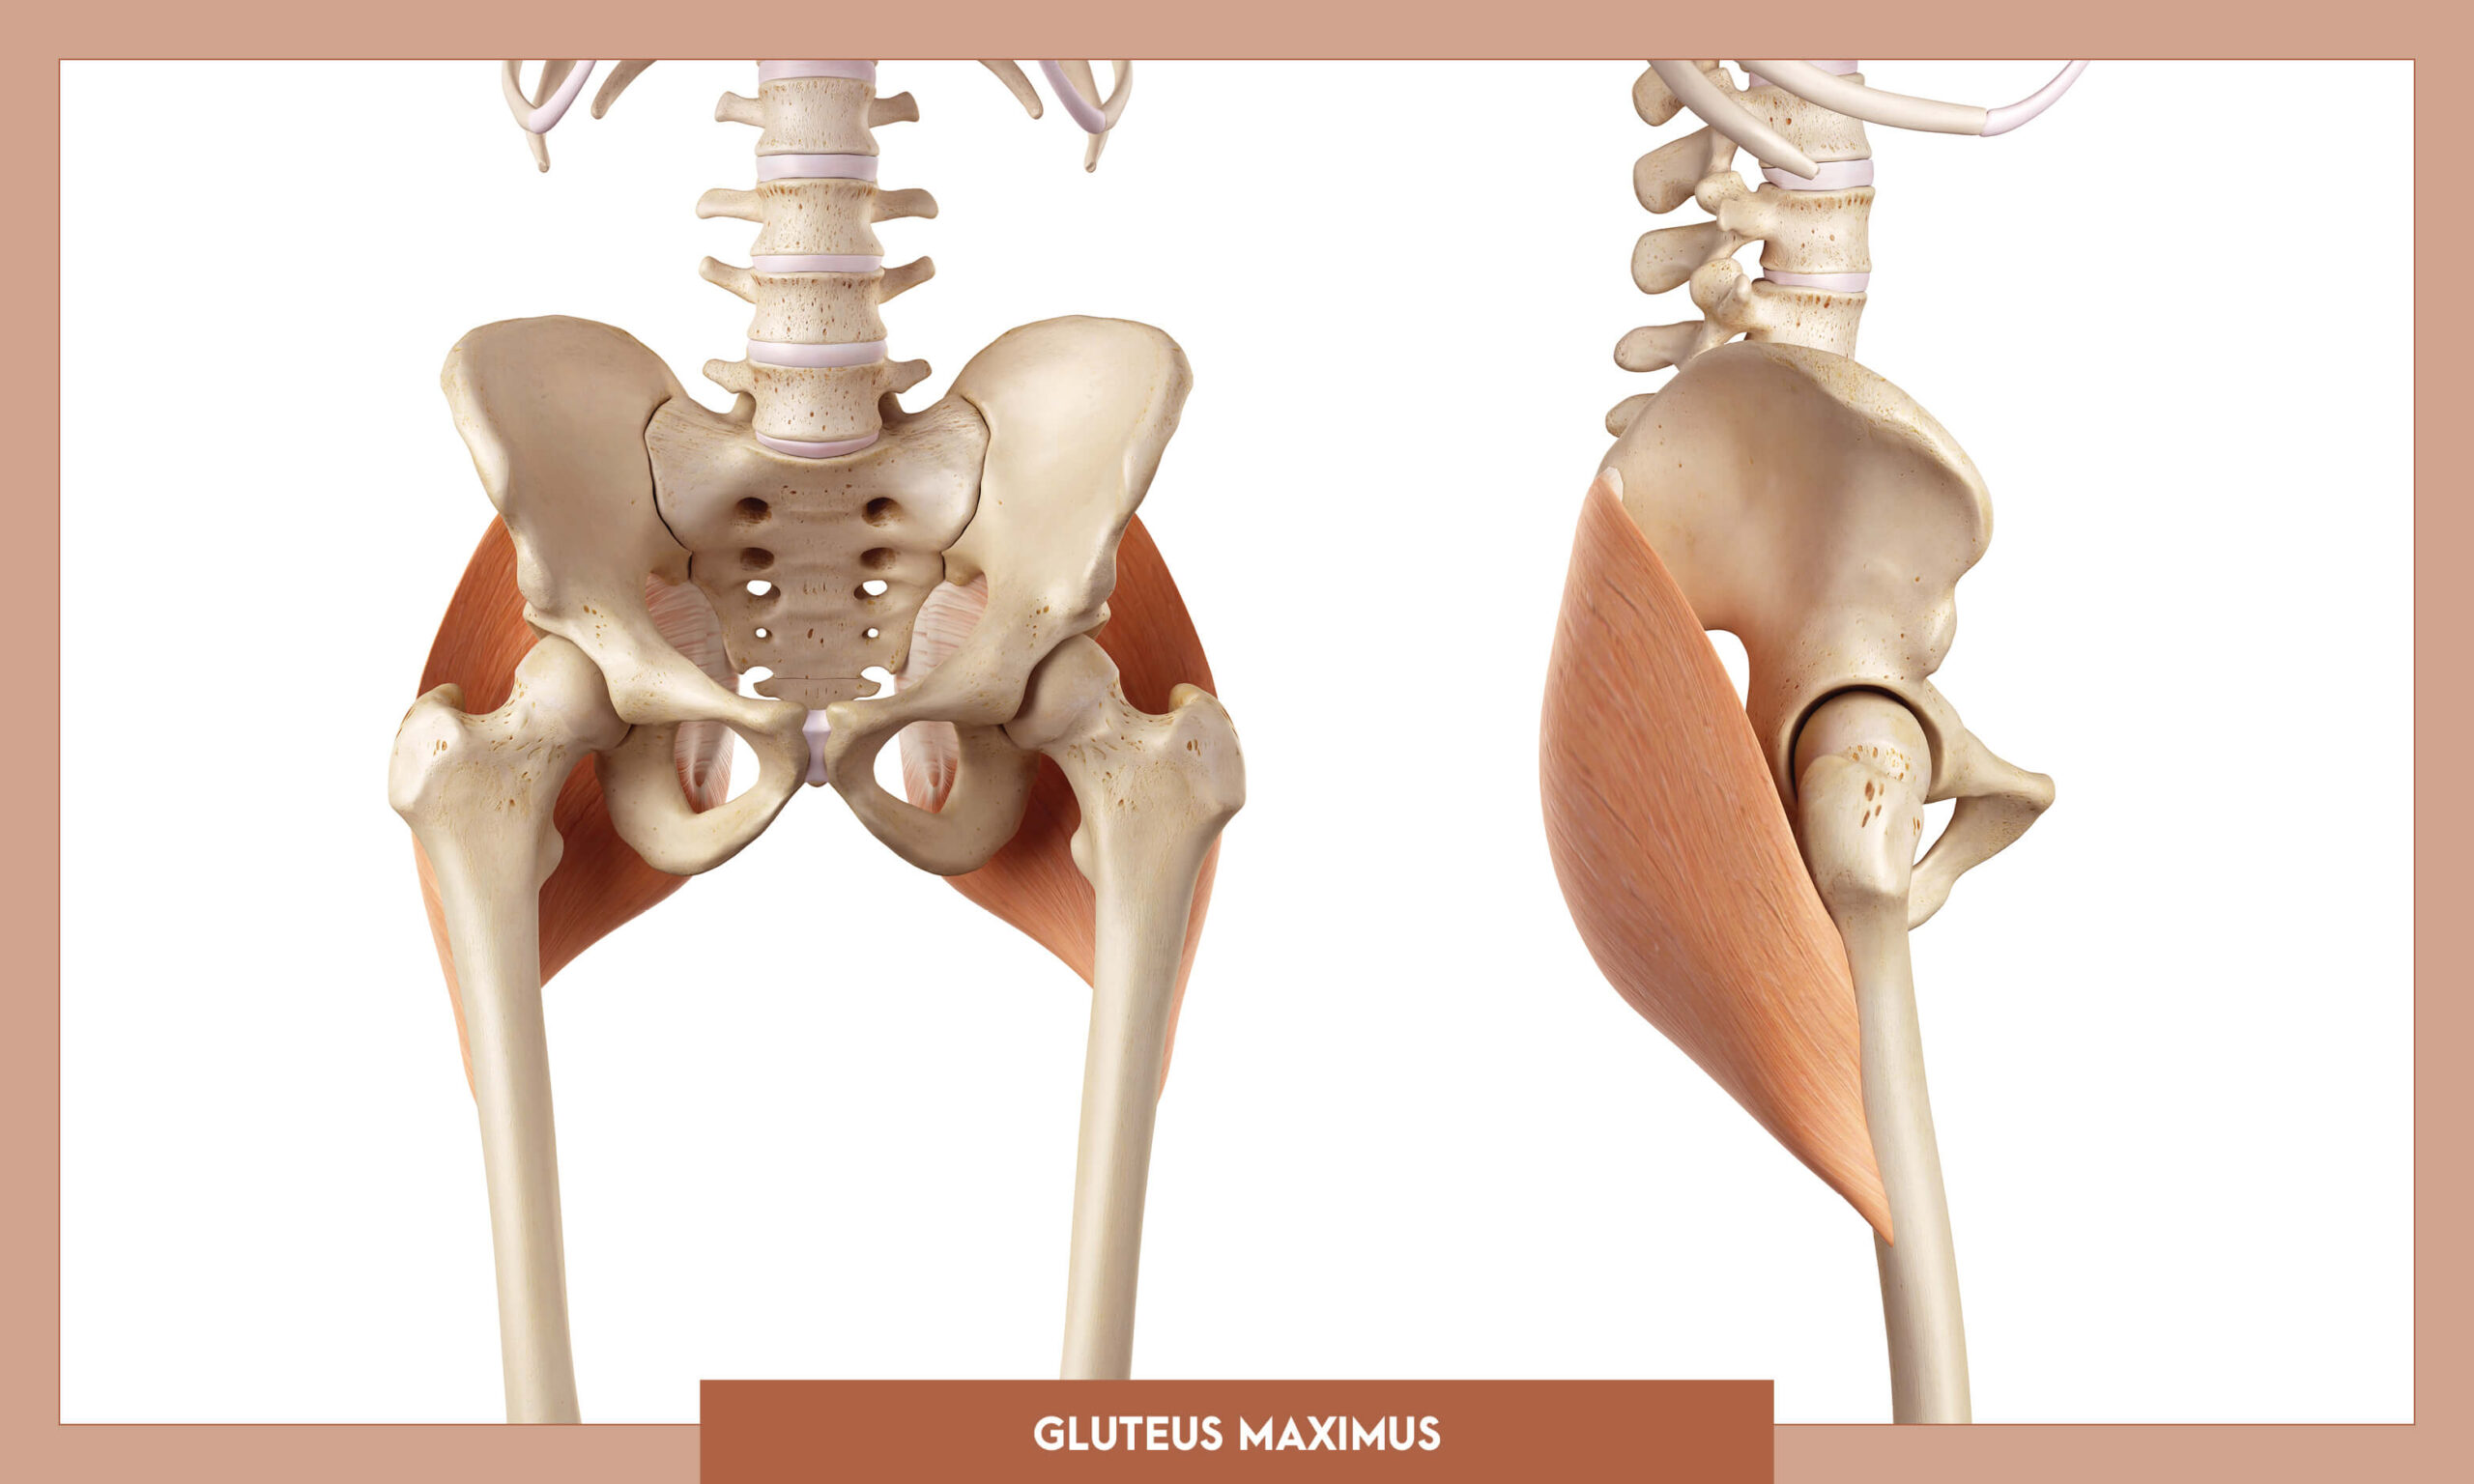 Muscles of thee Lower Limb - Gluteus maximus